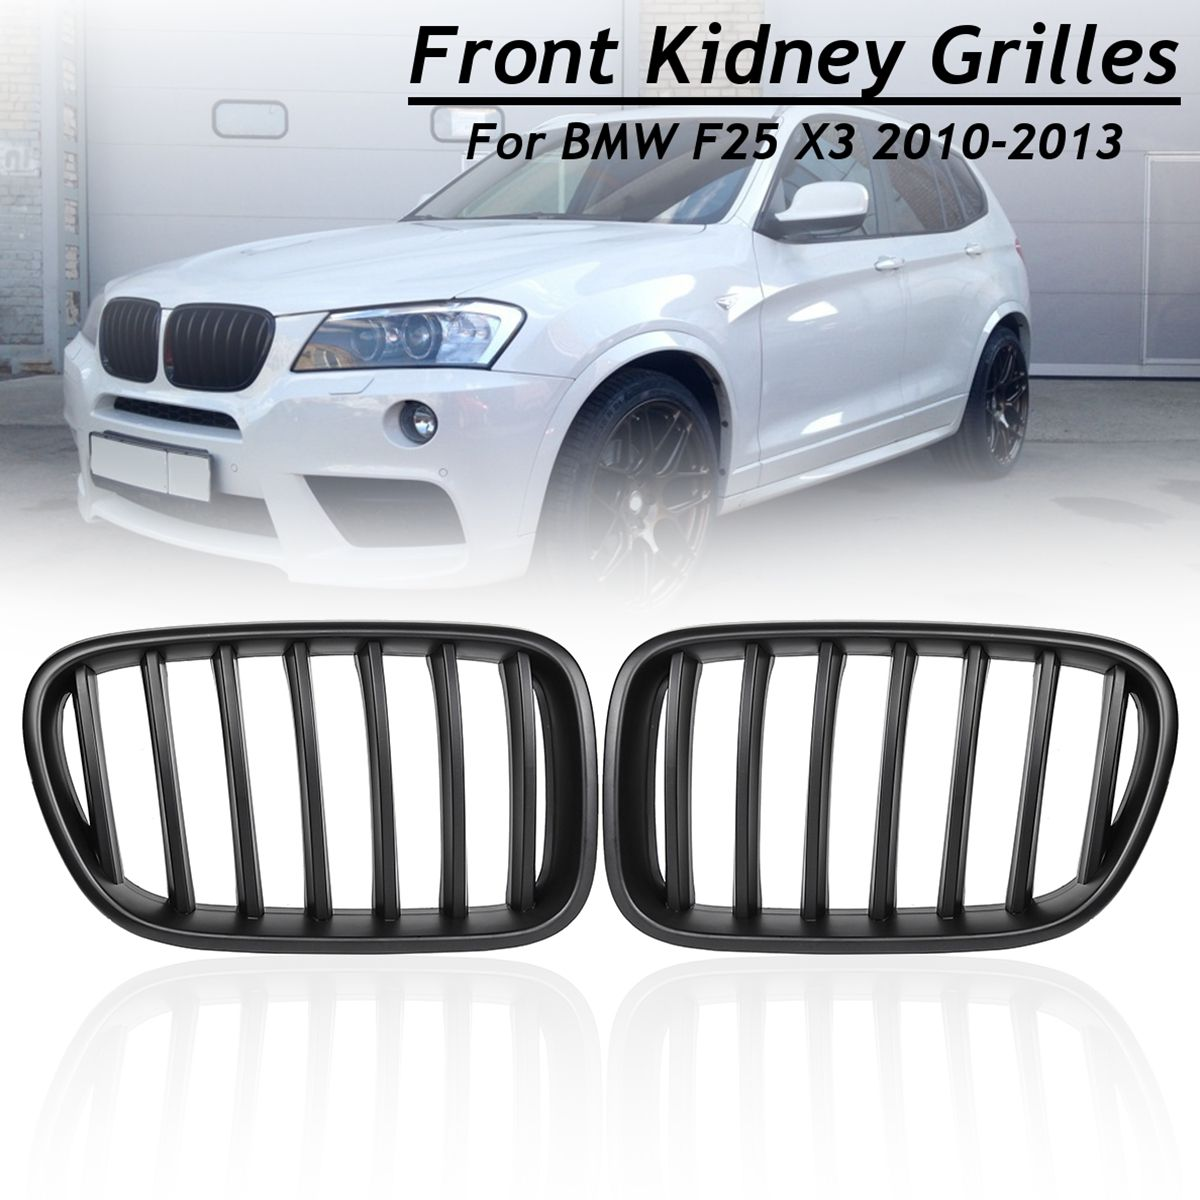 1 Pair Matte Black ABS Front Bumper Kidney Grilles for BMW F25 X3 2010 2011 2012 2013 Racing Grill